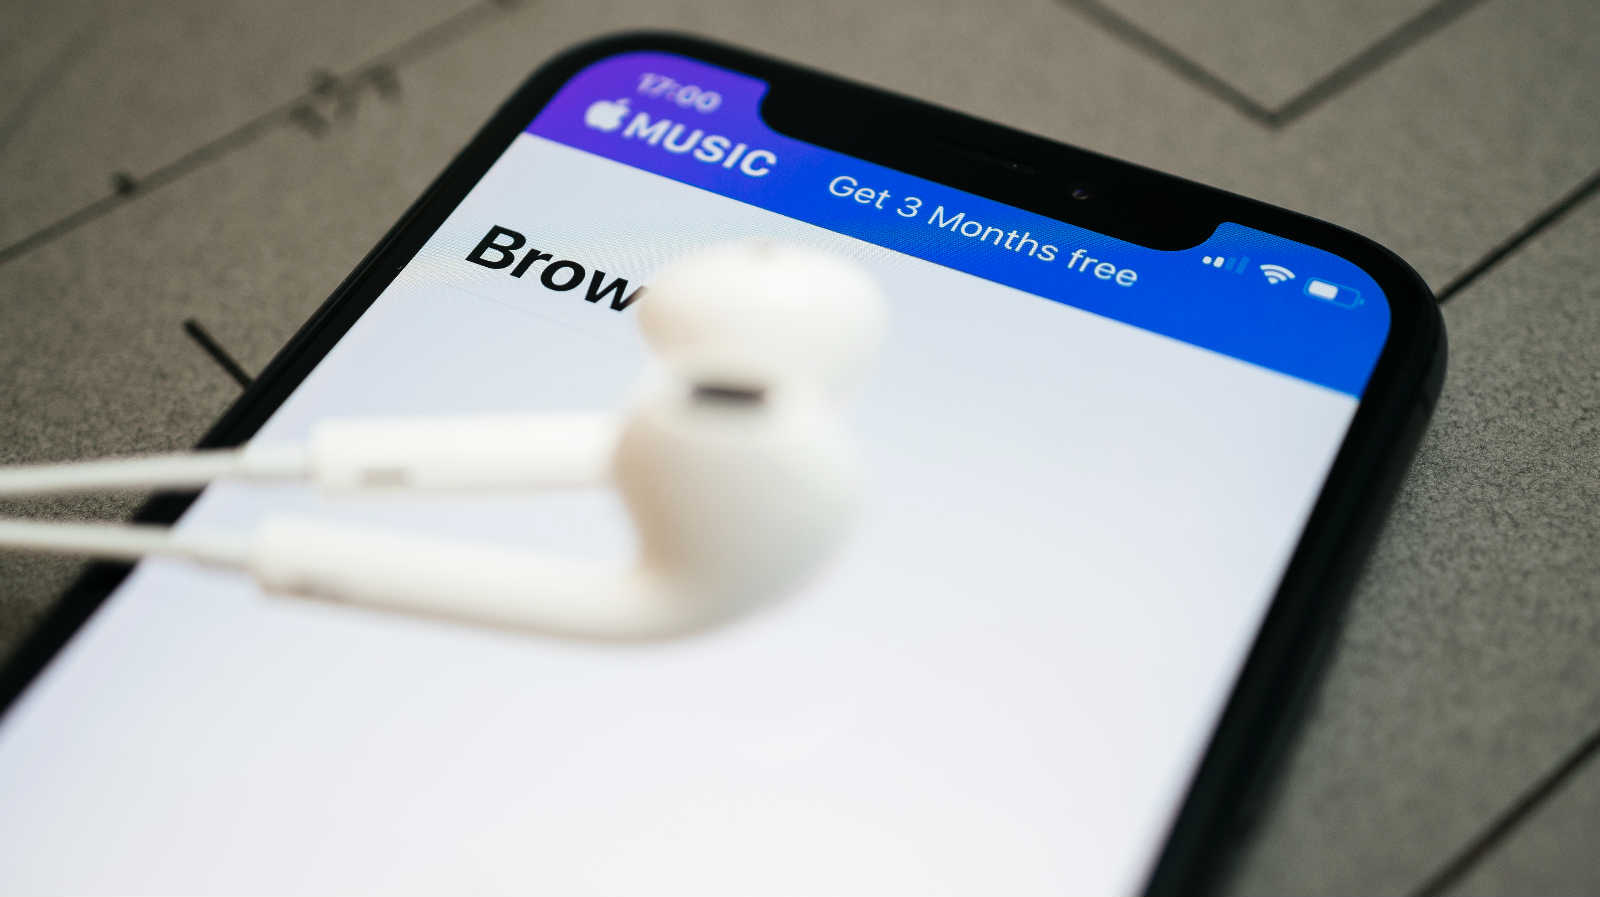 10 Best Apps to Get Free Music on iPhone - ESR Blog